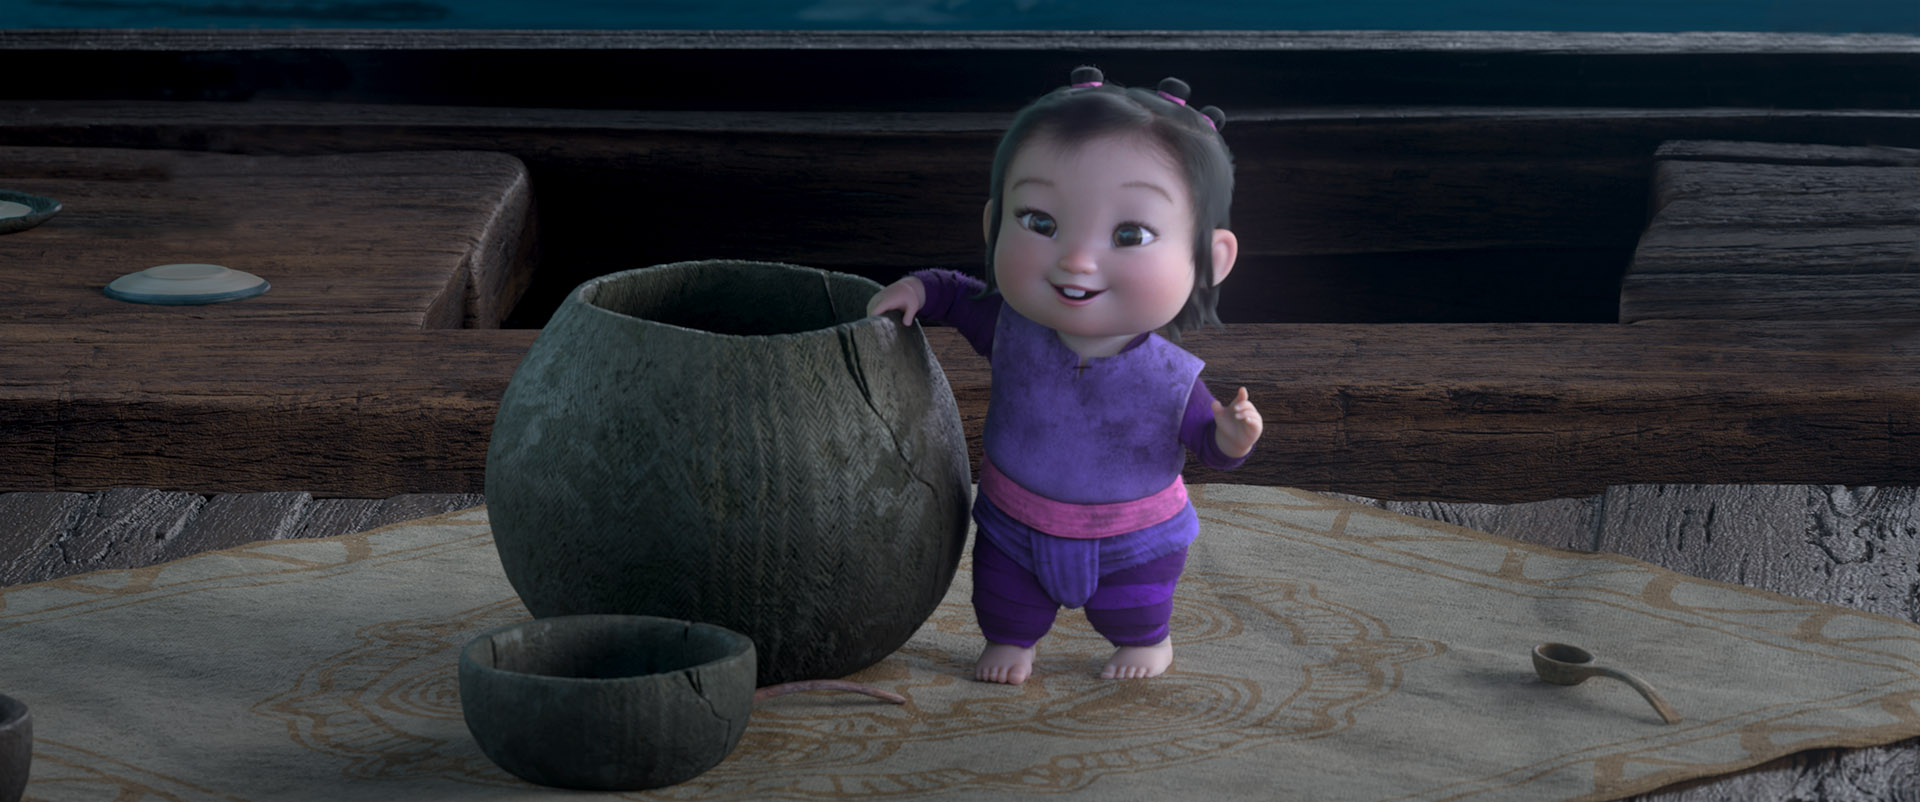 RAYA AND THE LAST DRAGON - Noi is a thieving toddler with a band of Ongis. © 2020 Disney. All Rights Reserved.